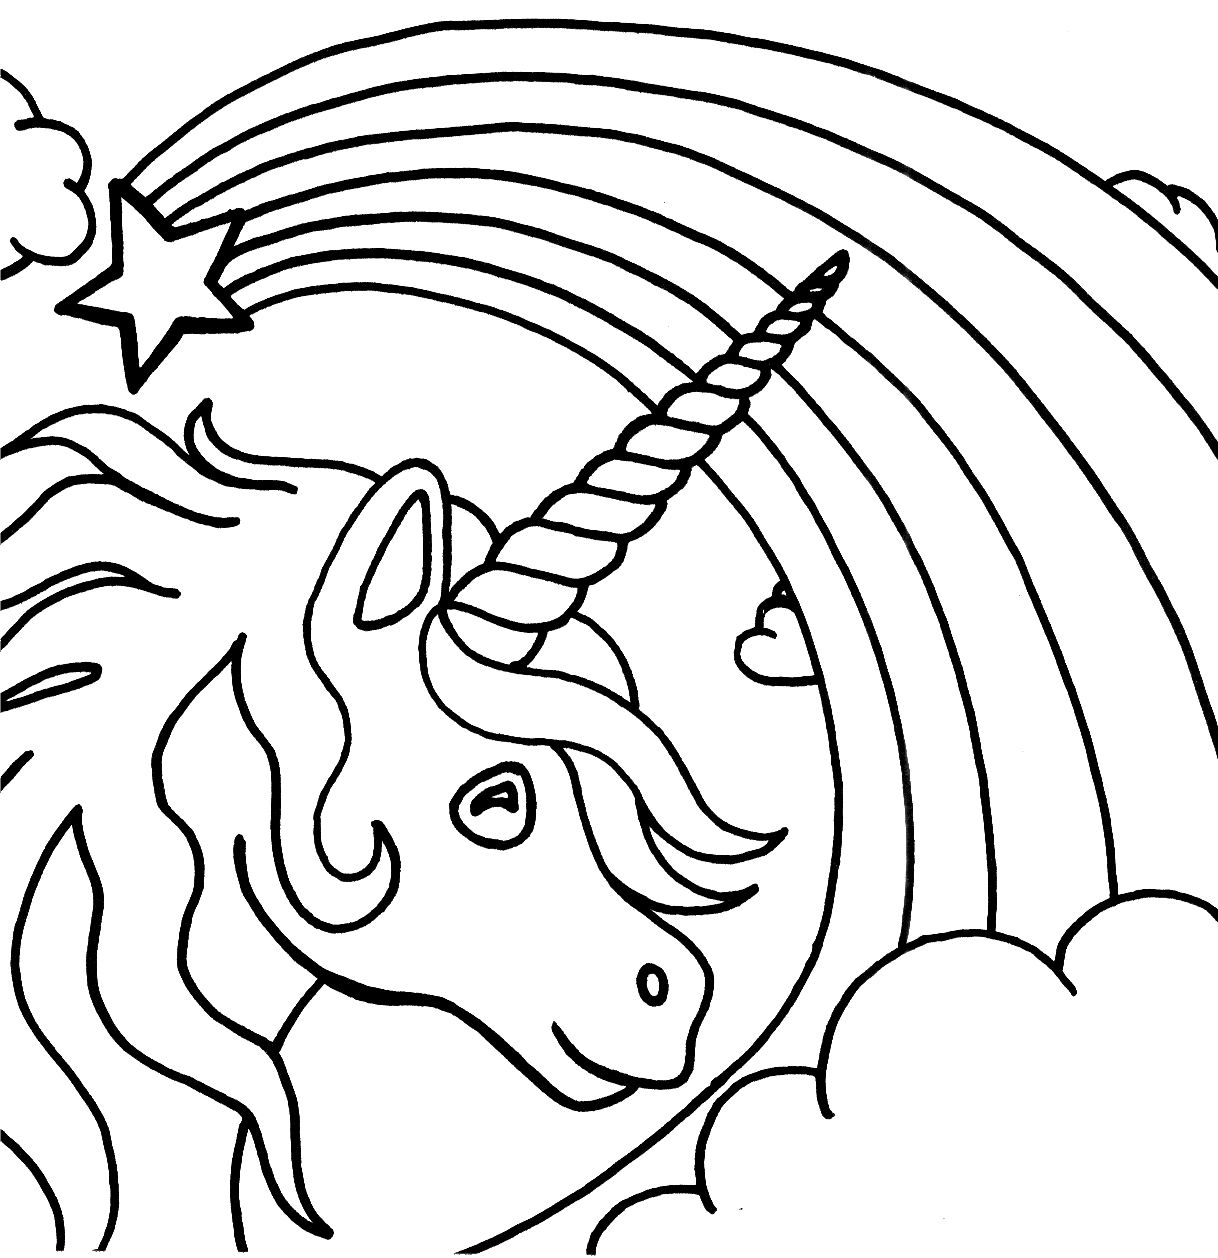 Free coloring pages com printable - Coloring Pages Free Printable Unicorn Coloring Pages For Kids